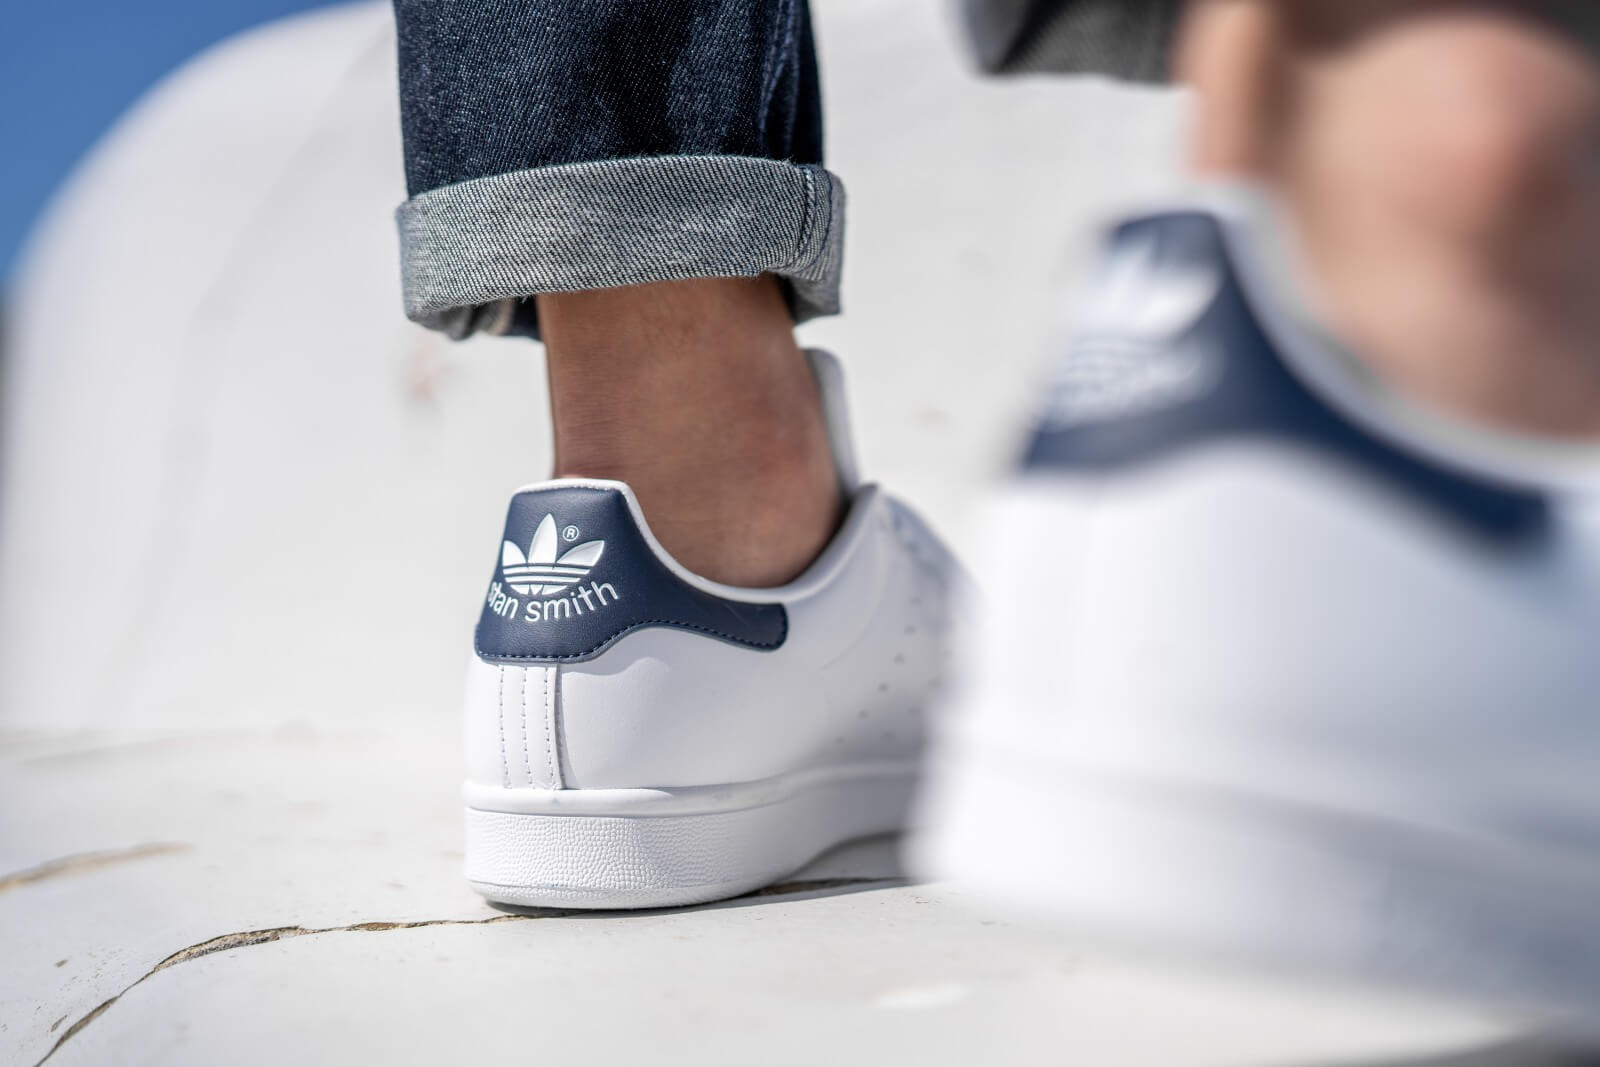 renombre mundial lindos zapatos brillo encantador Adidas Stan Smith Core White/Dark Blue - M20325